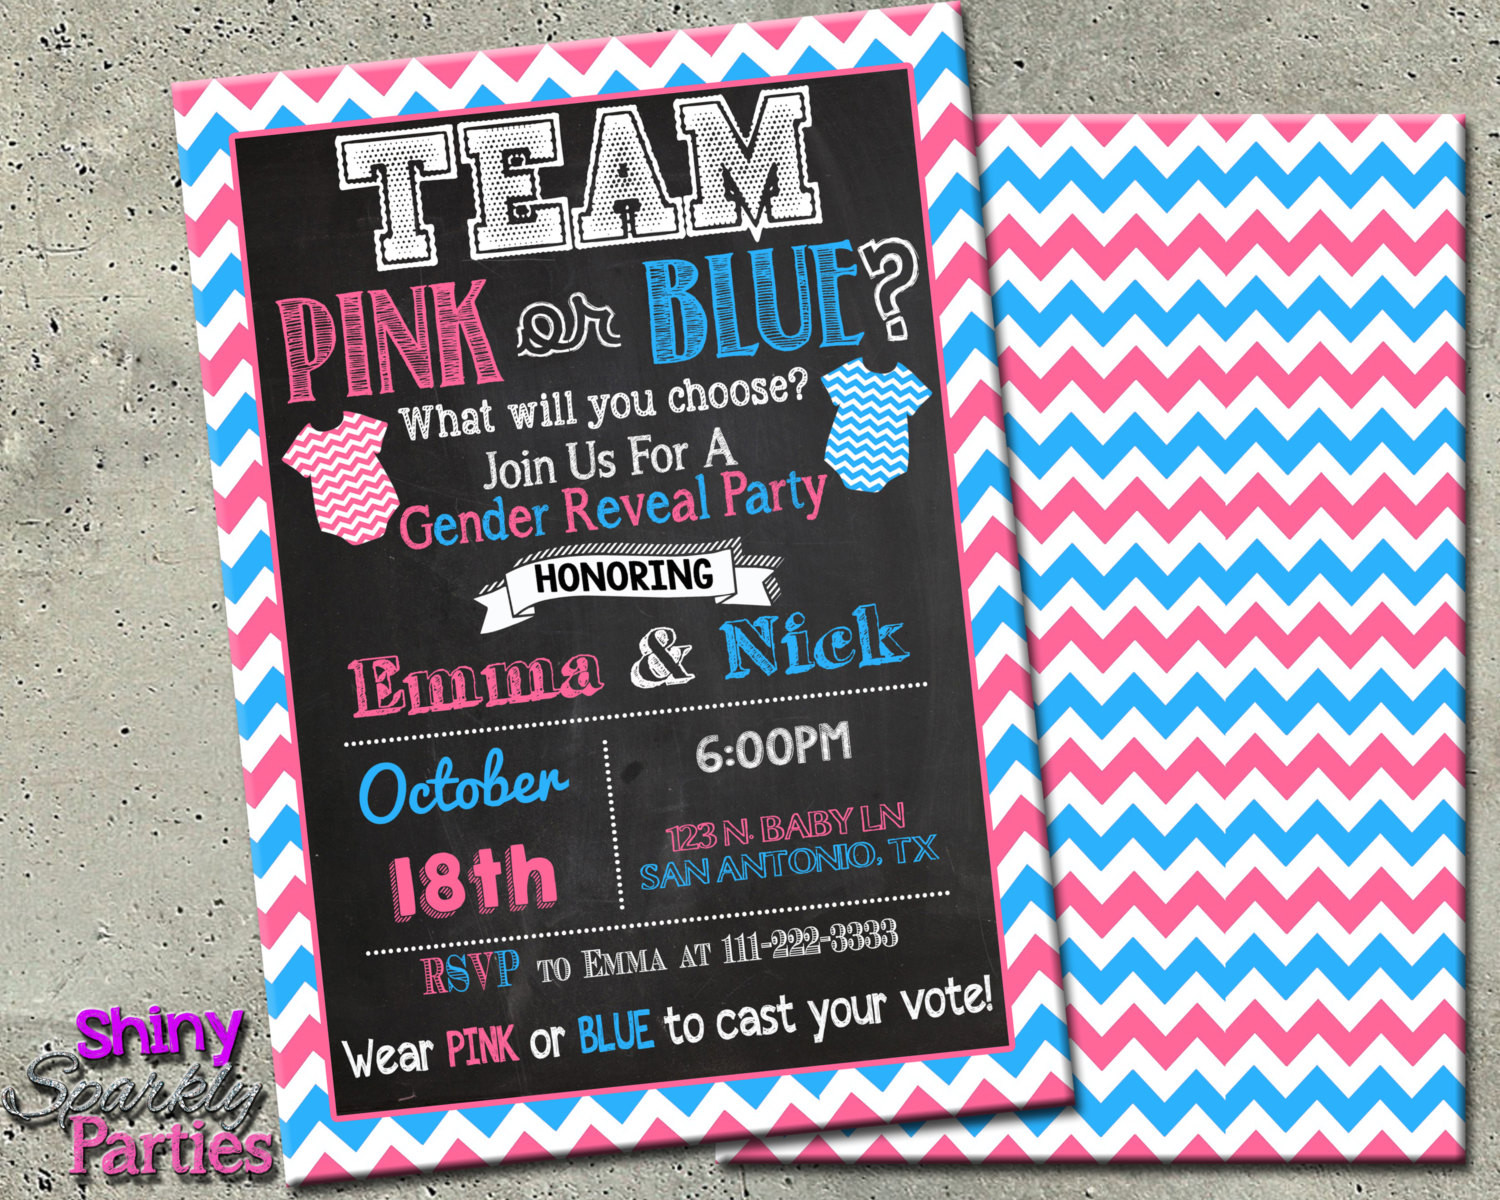 Gender Reveal Party Invitation Ideas  GENDER REVEAL INVITATION Team Pink or Blue Gender Reveal